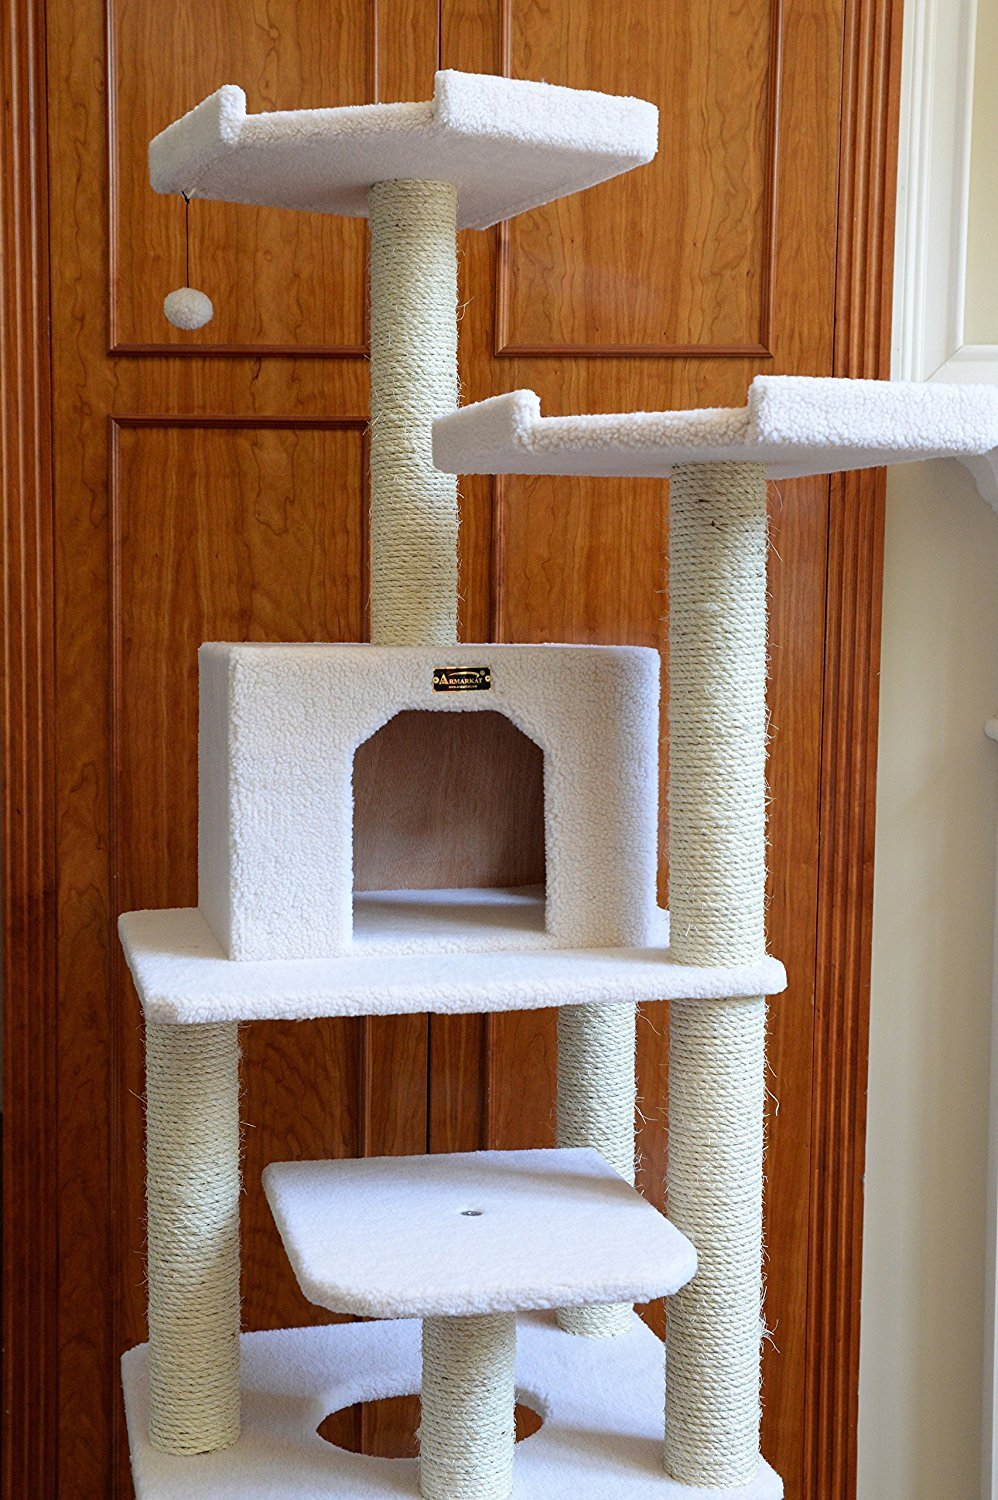 Ivory with Cat Bed Armarkat Combo Cat Tree Green